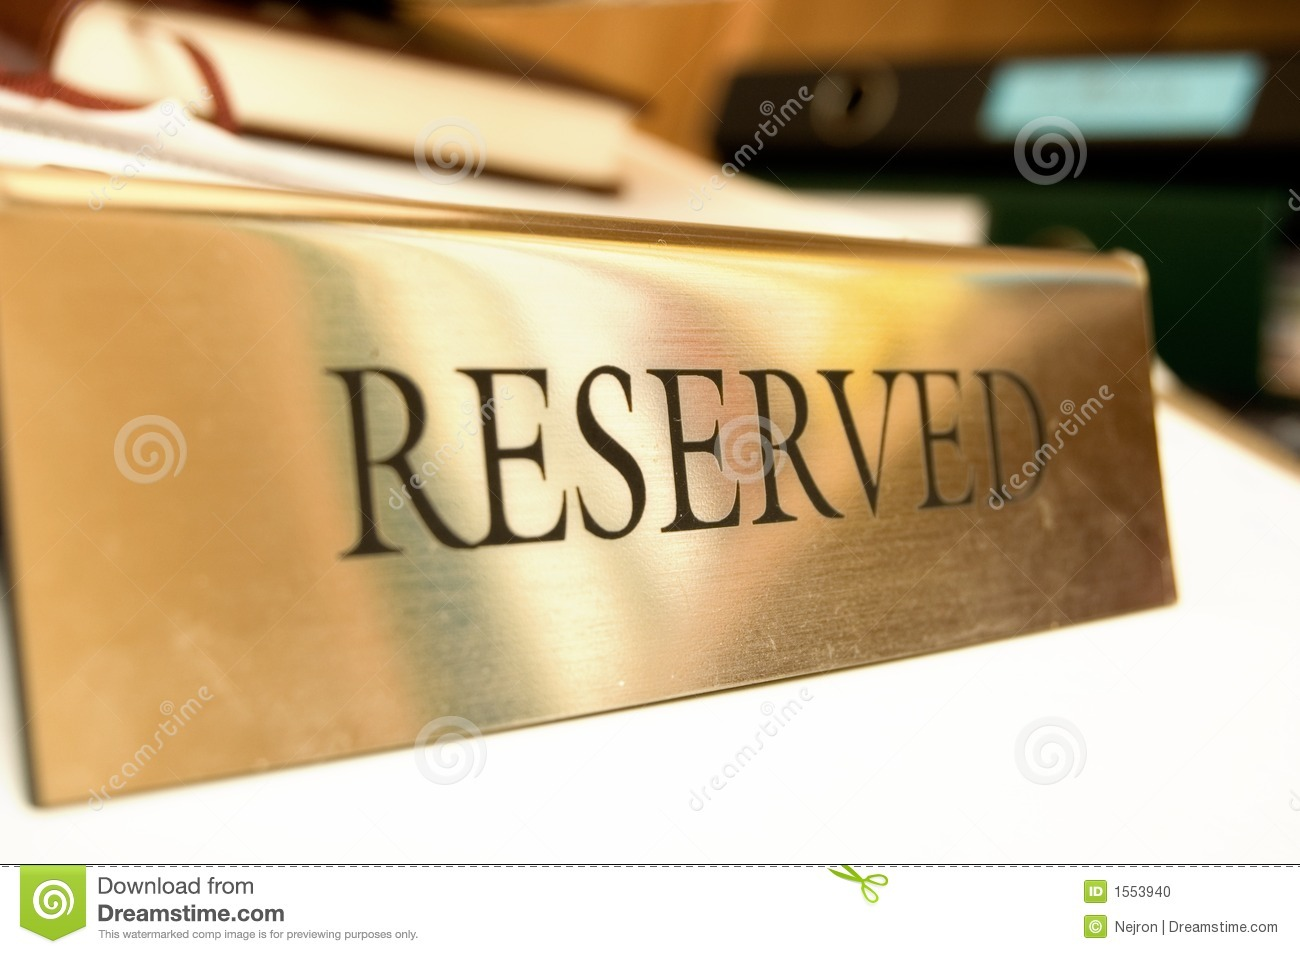 Reserved title